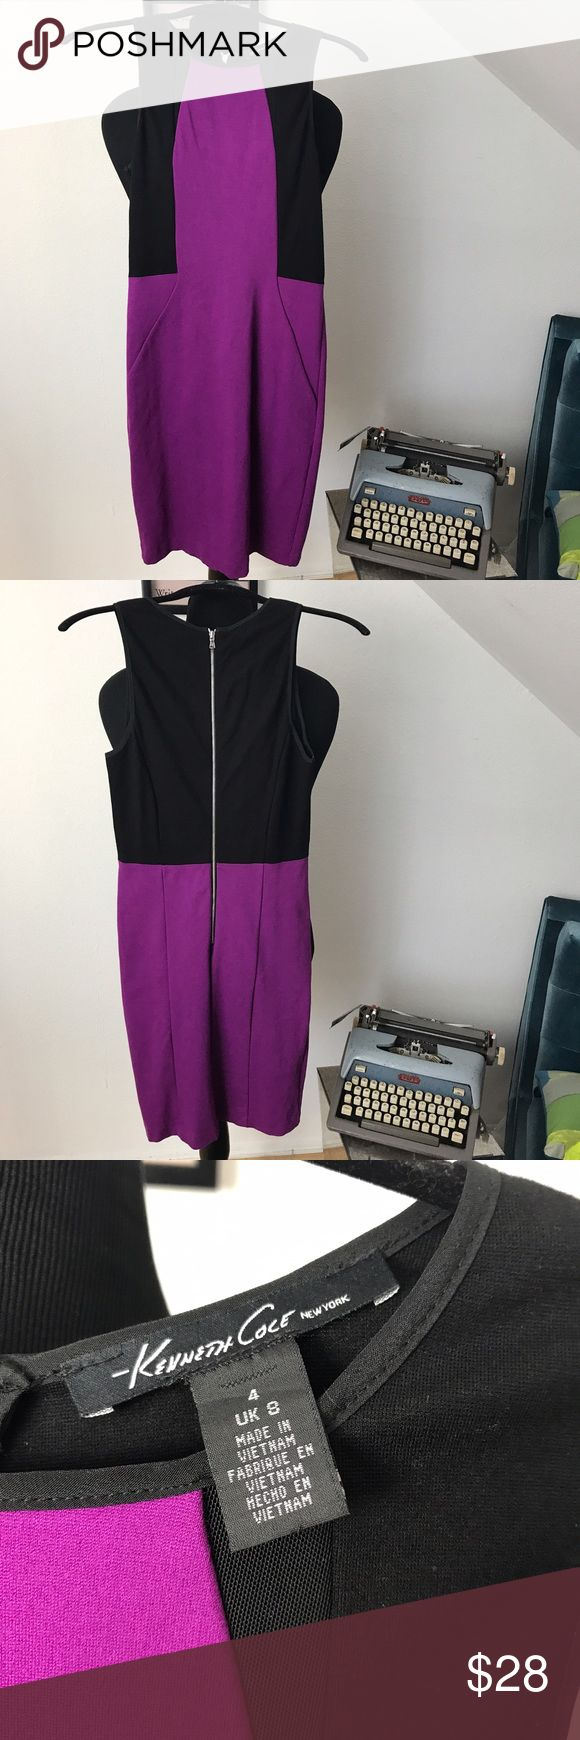 Kenneth Cole Purple Body Con Dress The color of this dress is gorgeousssss! Purple/black body con by Kenneth Cole, maybe worn once in perfect condition. Kenneth Cole Dresses